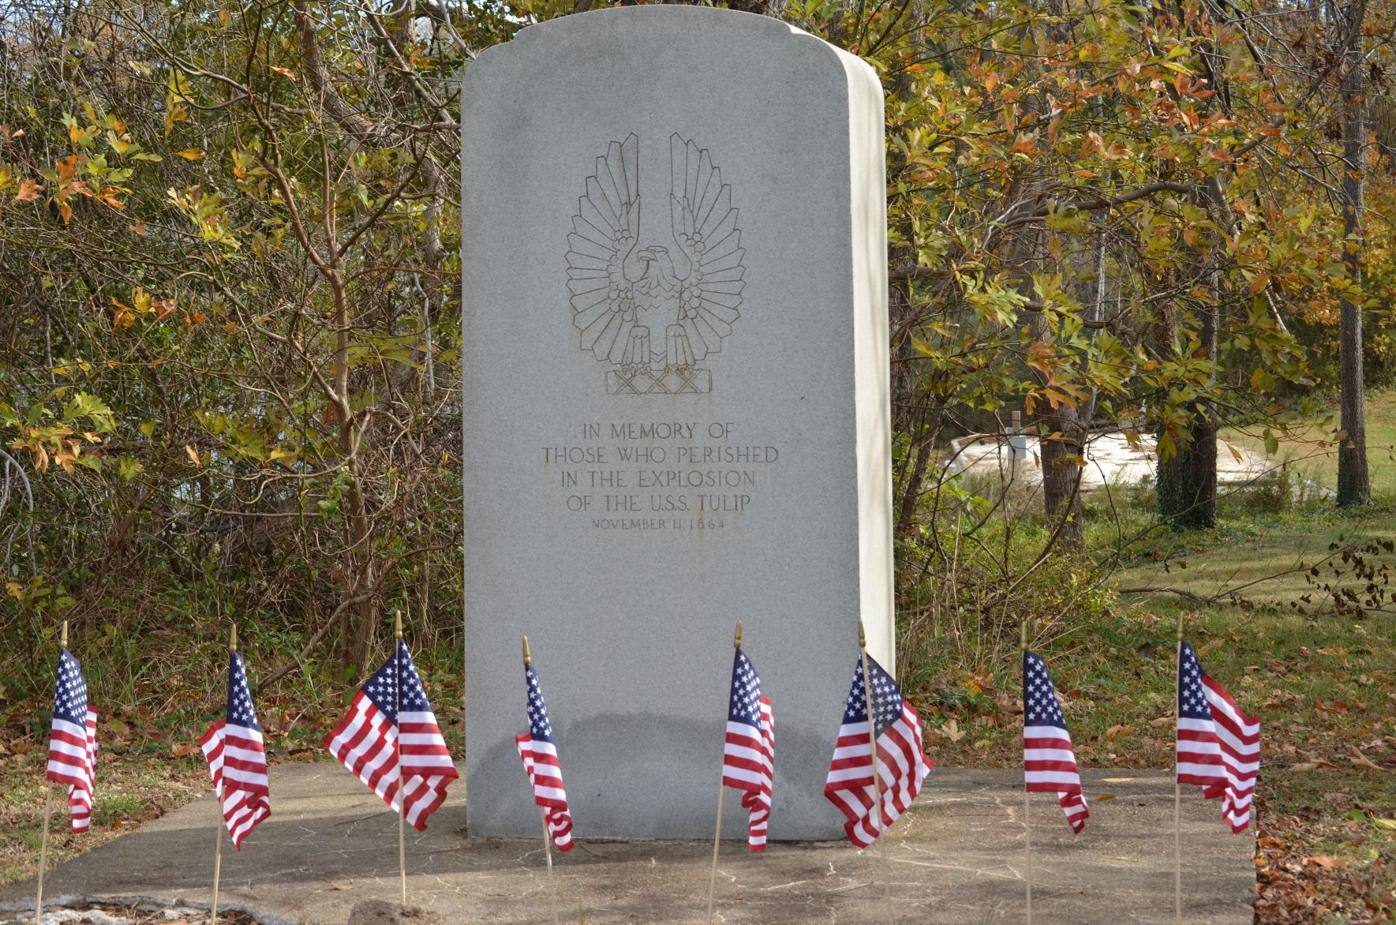 Remembering two veterans who served in the Civil War